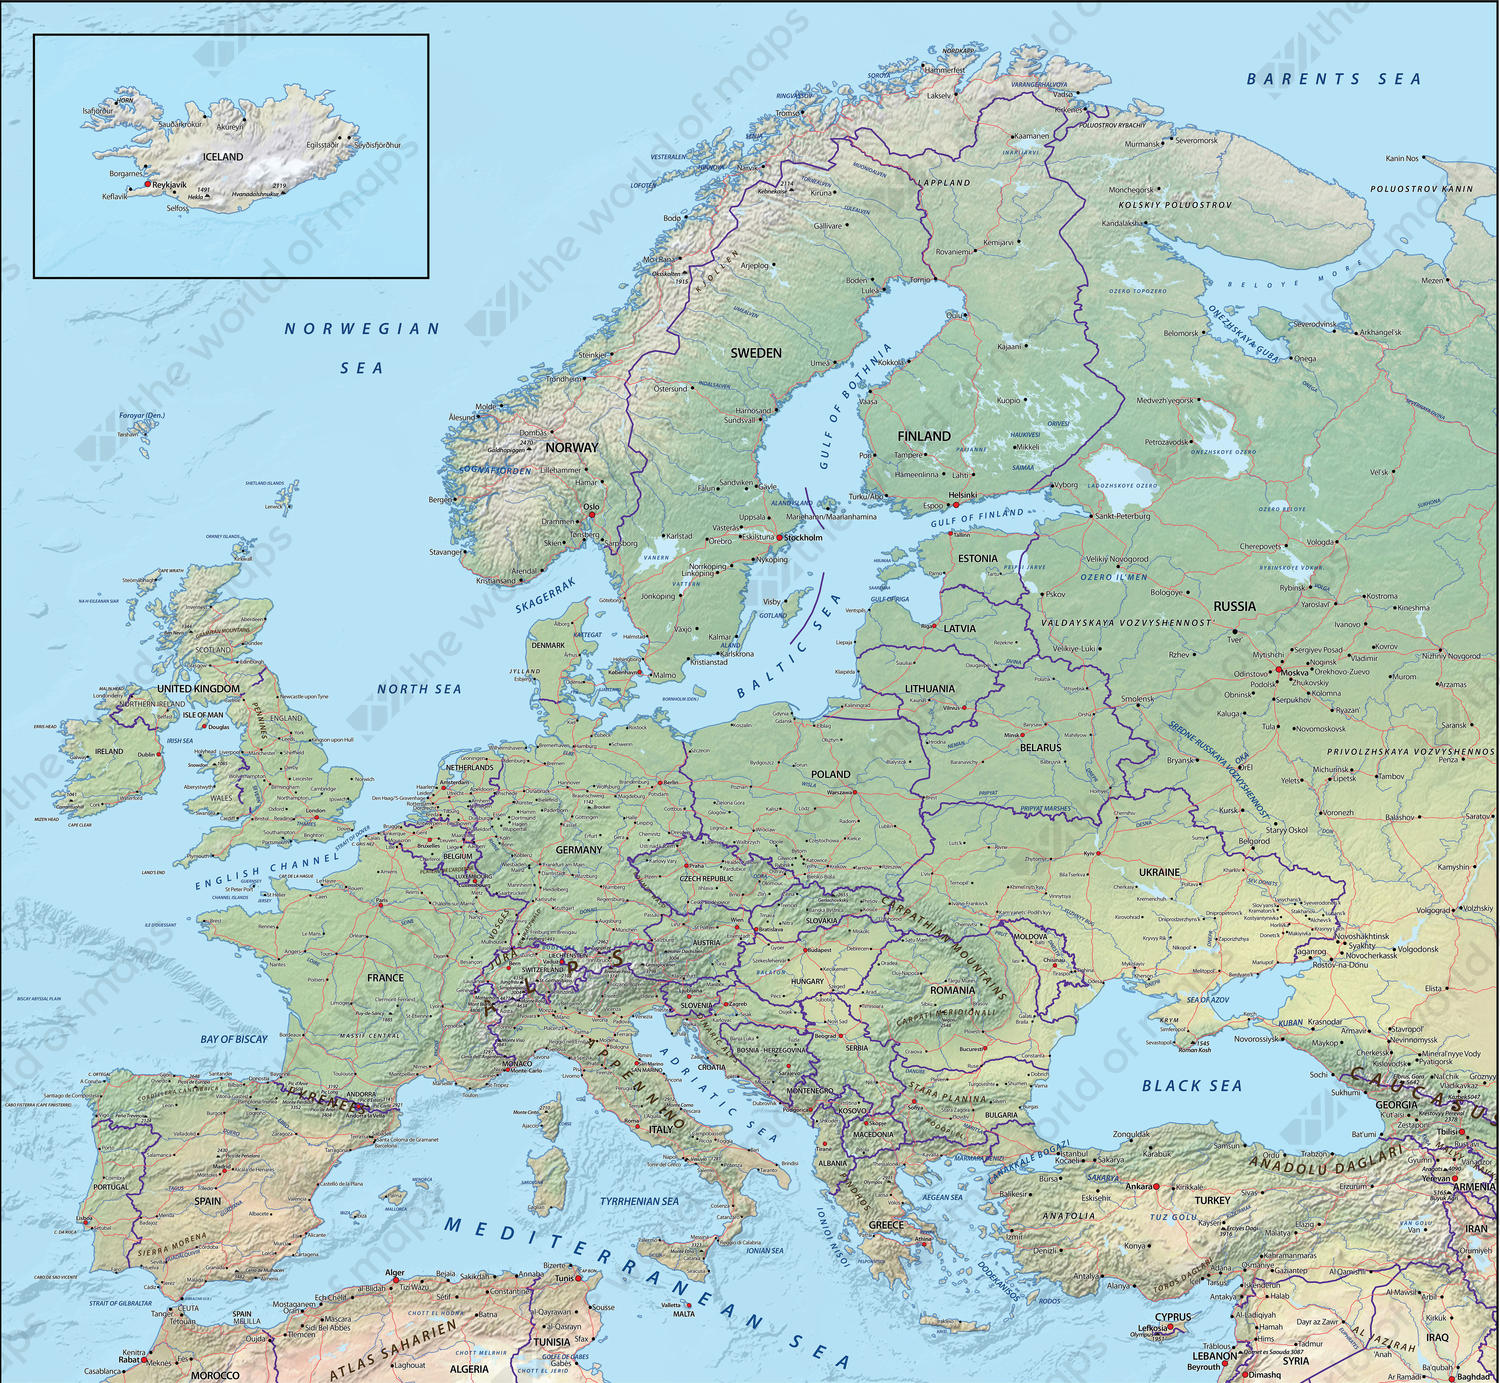 Digital Map Europe Physical 622 | The World of Maps.com